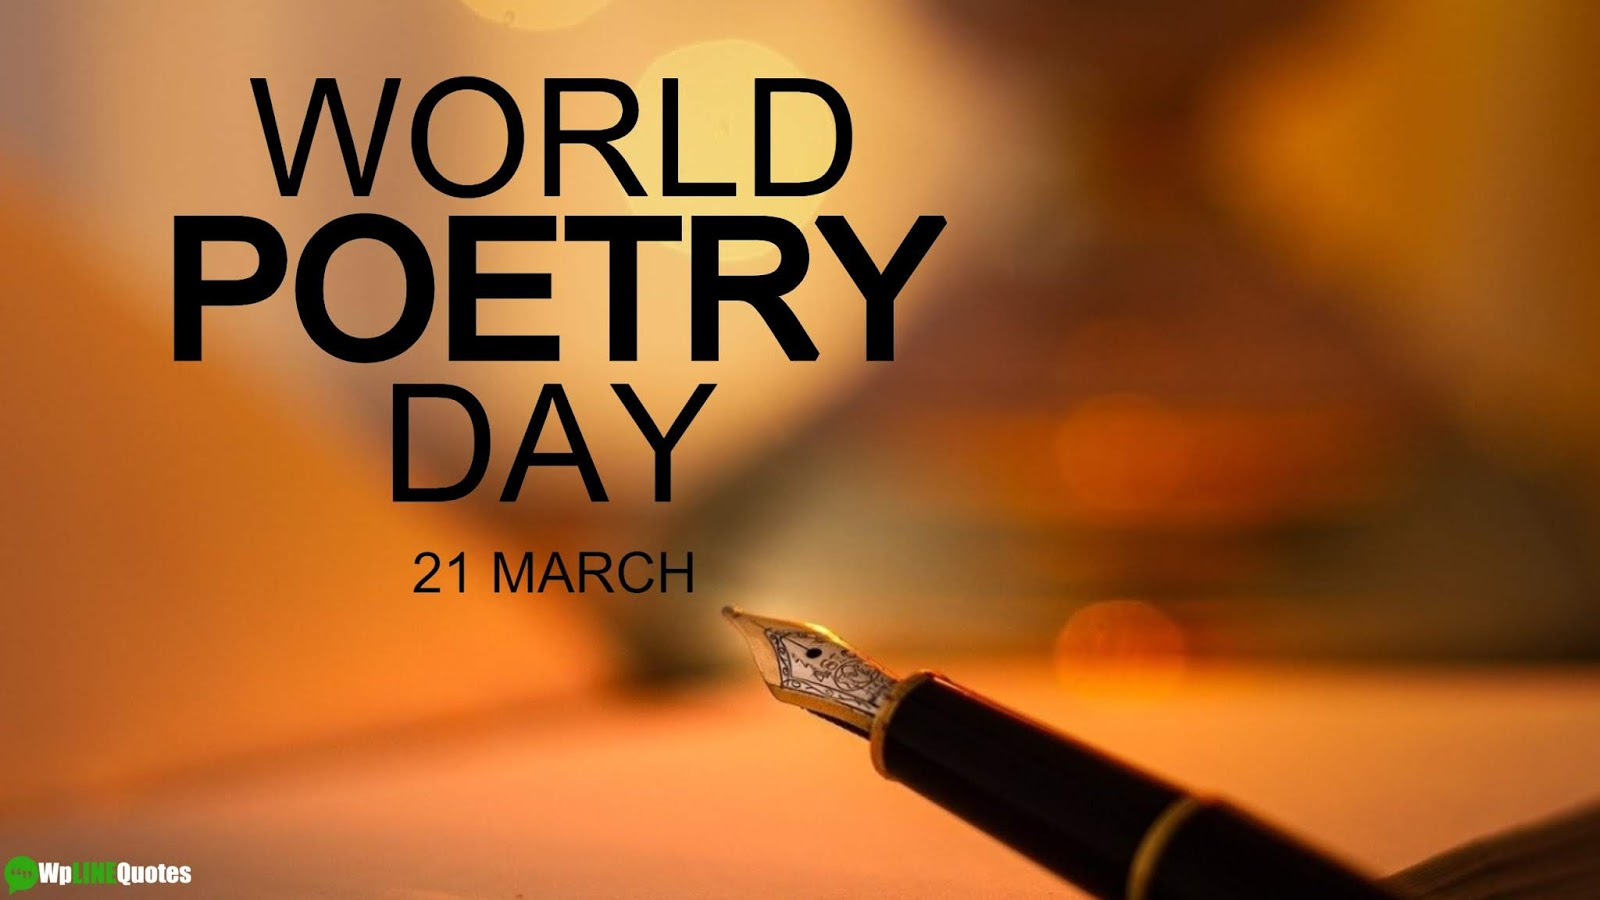 World Poetry Day Quotes, Activities, Poster, Images